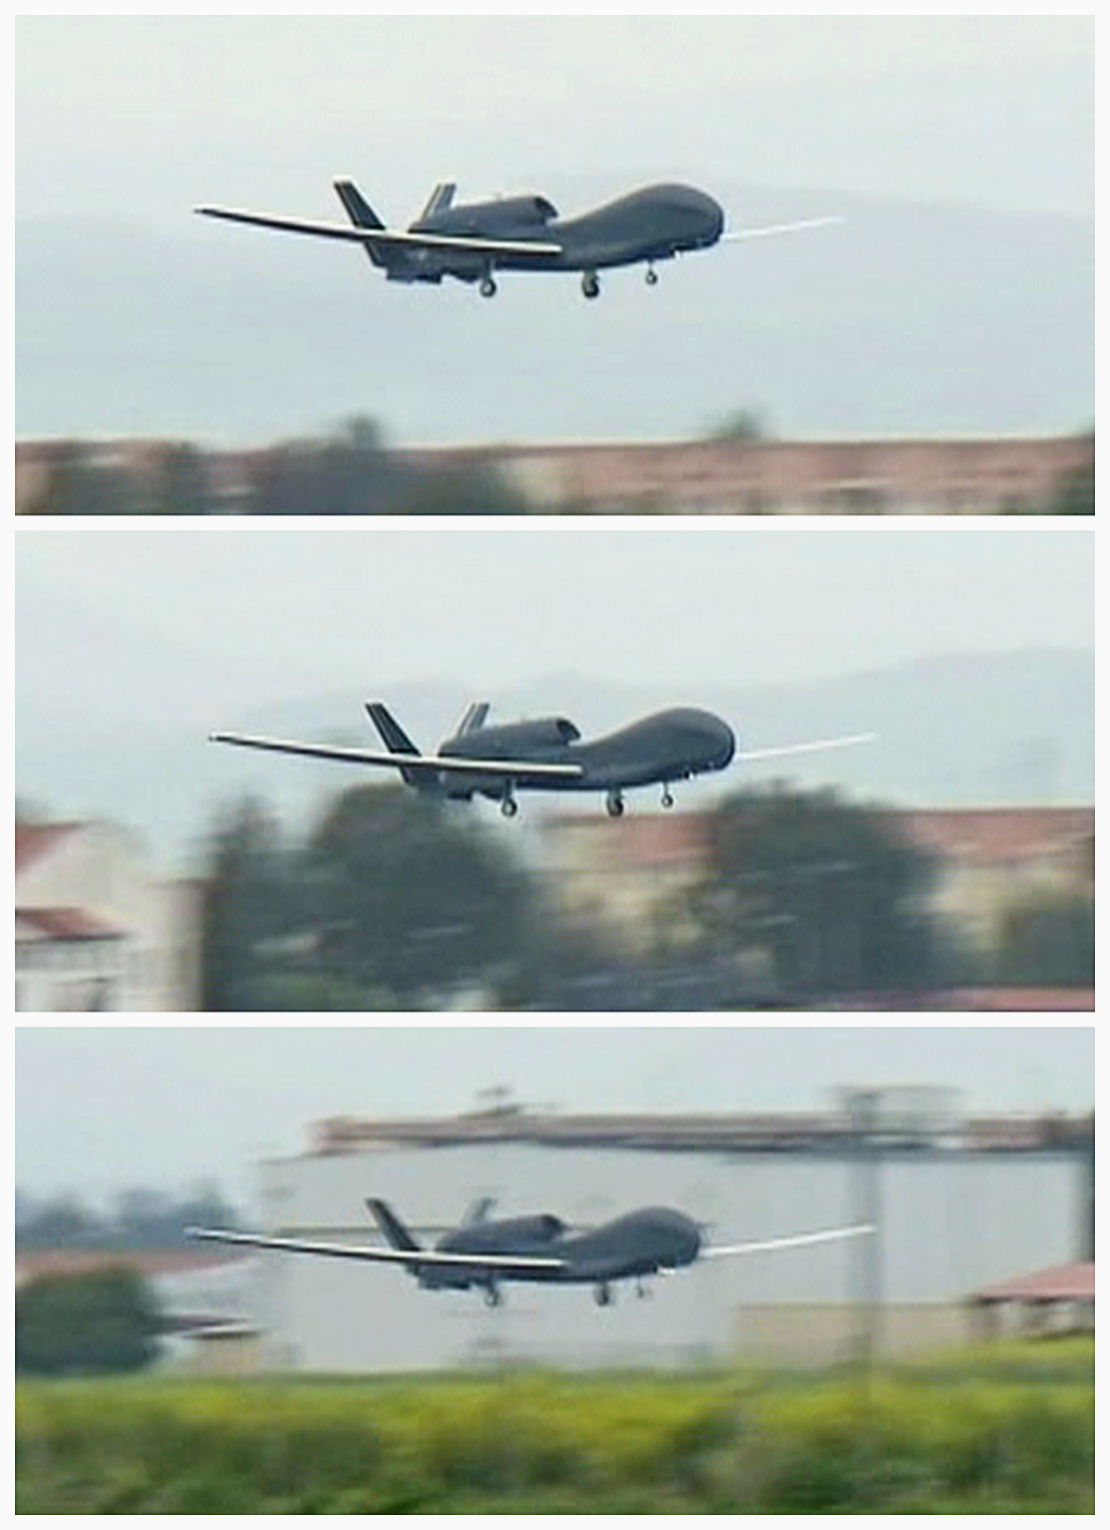 FILE PHOTO: This combination photo shows a U.S. military Global Hawk drone taking off from Sigonella NATO Airbase in the southern Italian island of Sicily March 20, 2011, in this still image taken from video. REUTERS/REUTERS TV/File Photo